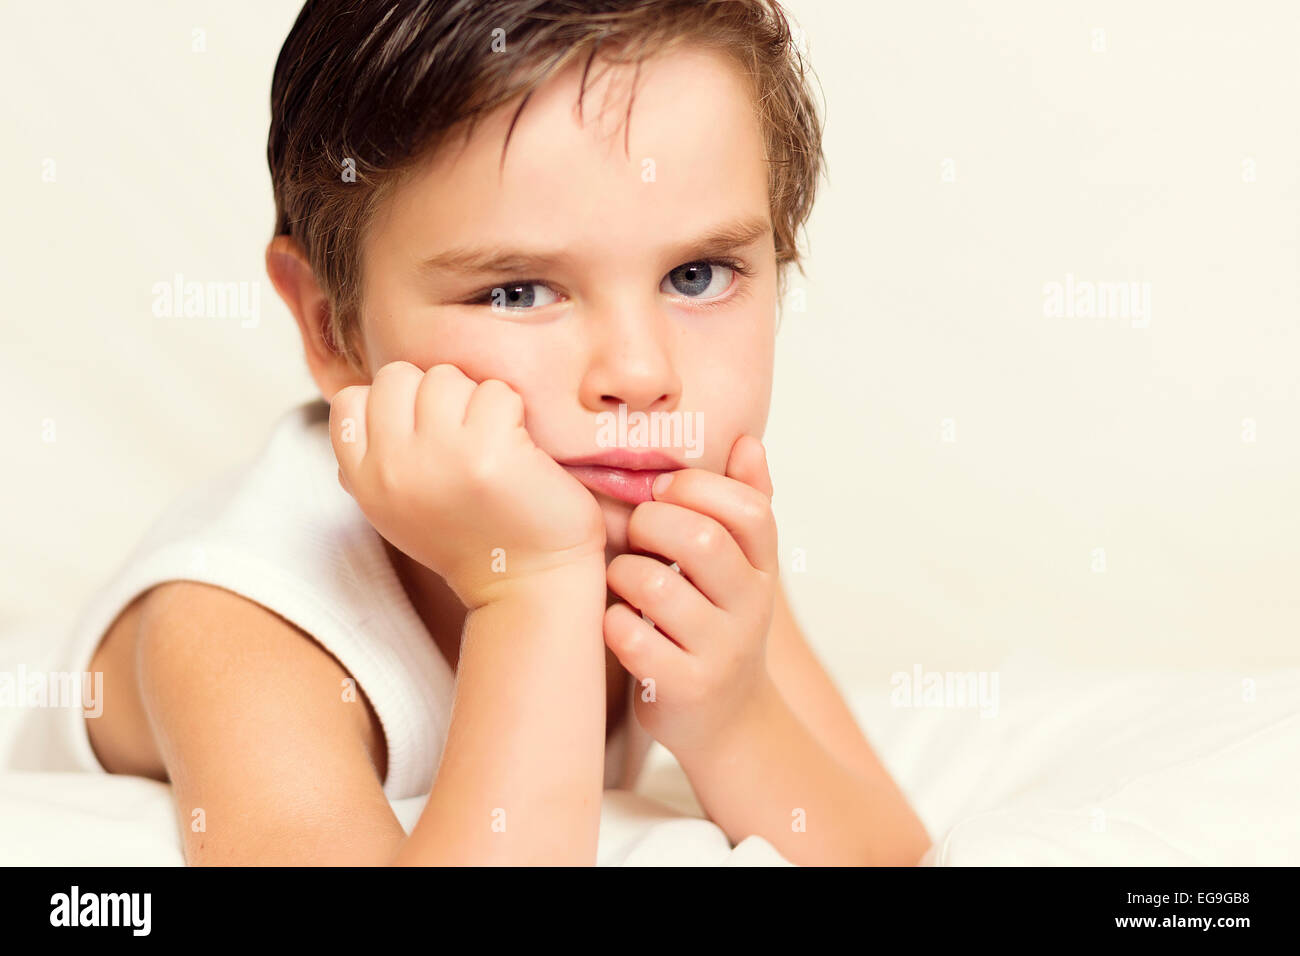 Portrait of boy with hand on chin - Stock Image